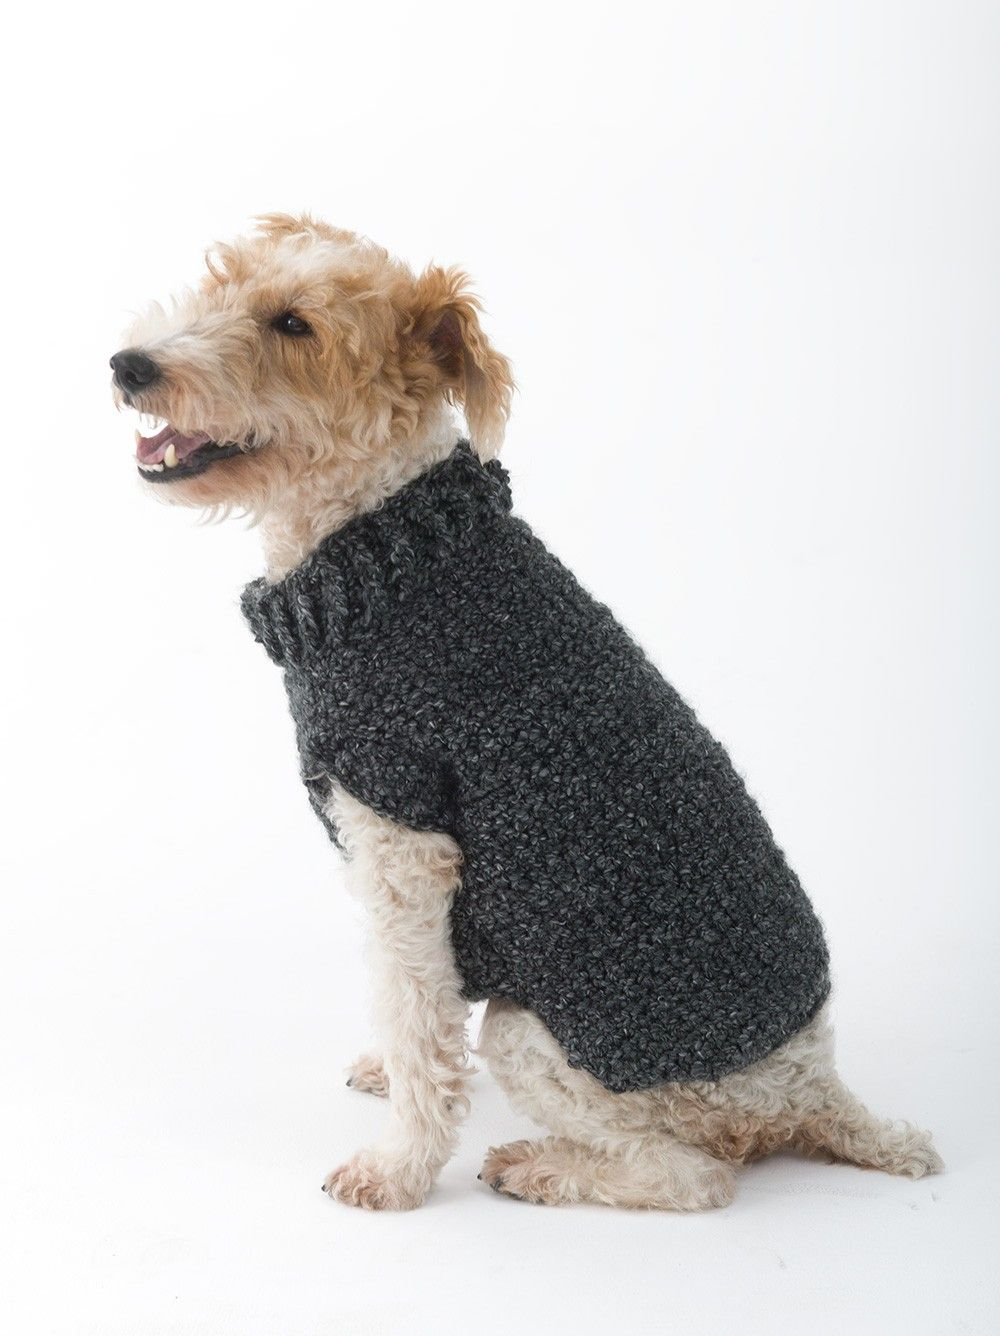 Pin de Merle Plotkin en Doggie Sweaters D | Pinterest